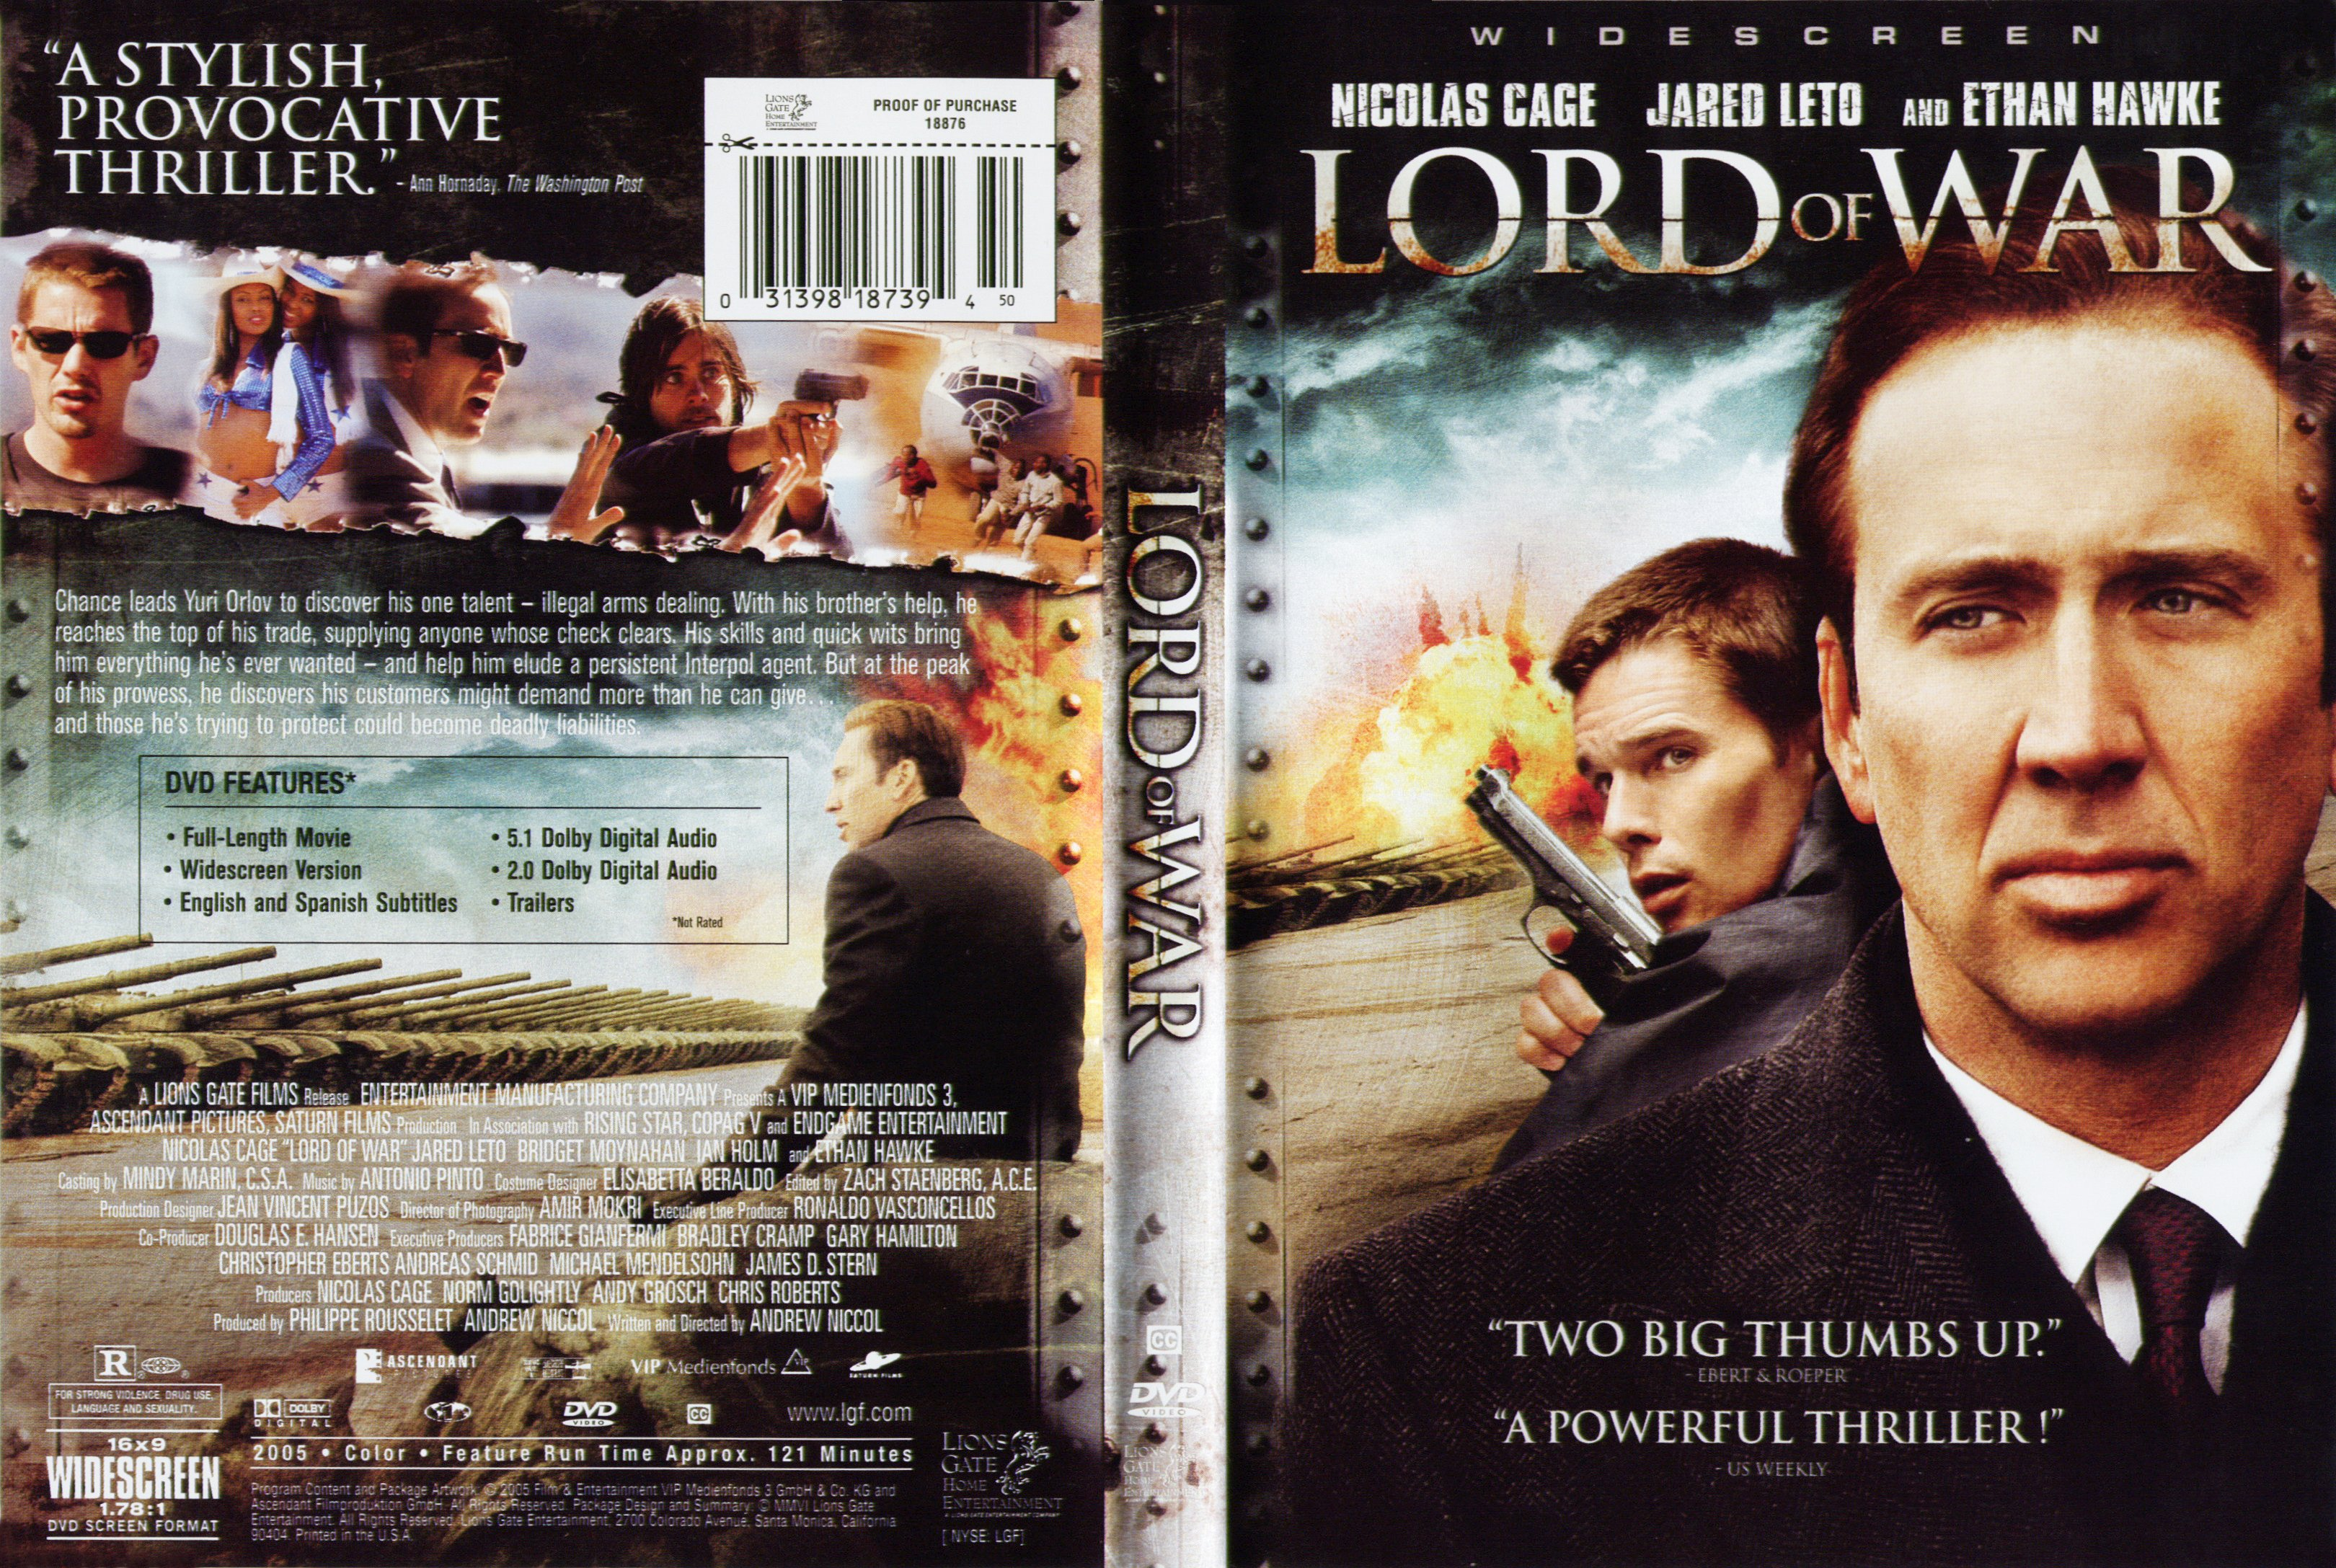 lord of war Lord of war is an action adventure story set in the world of international arms dealing the film, based on fact, follows the globetrotting exploits of arms dealer yuri orlov.